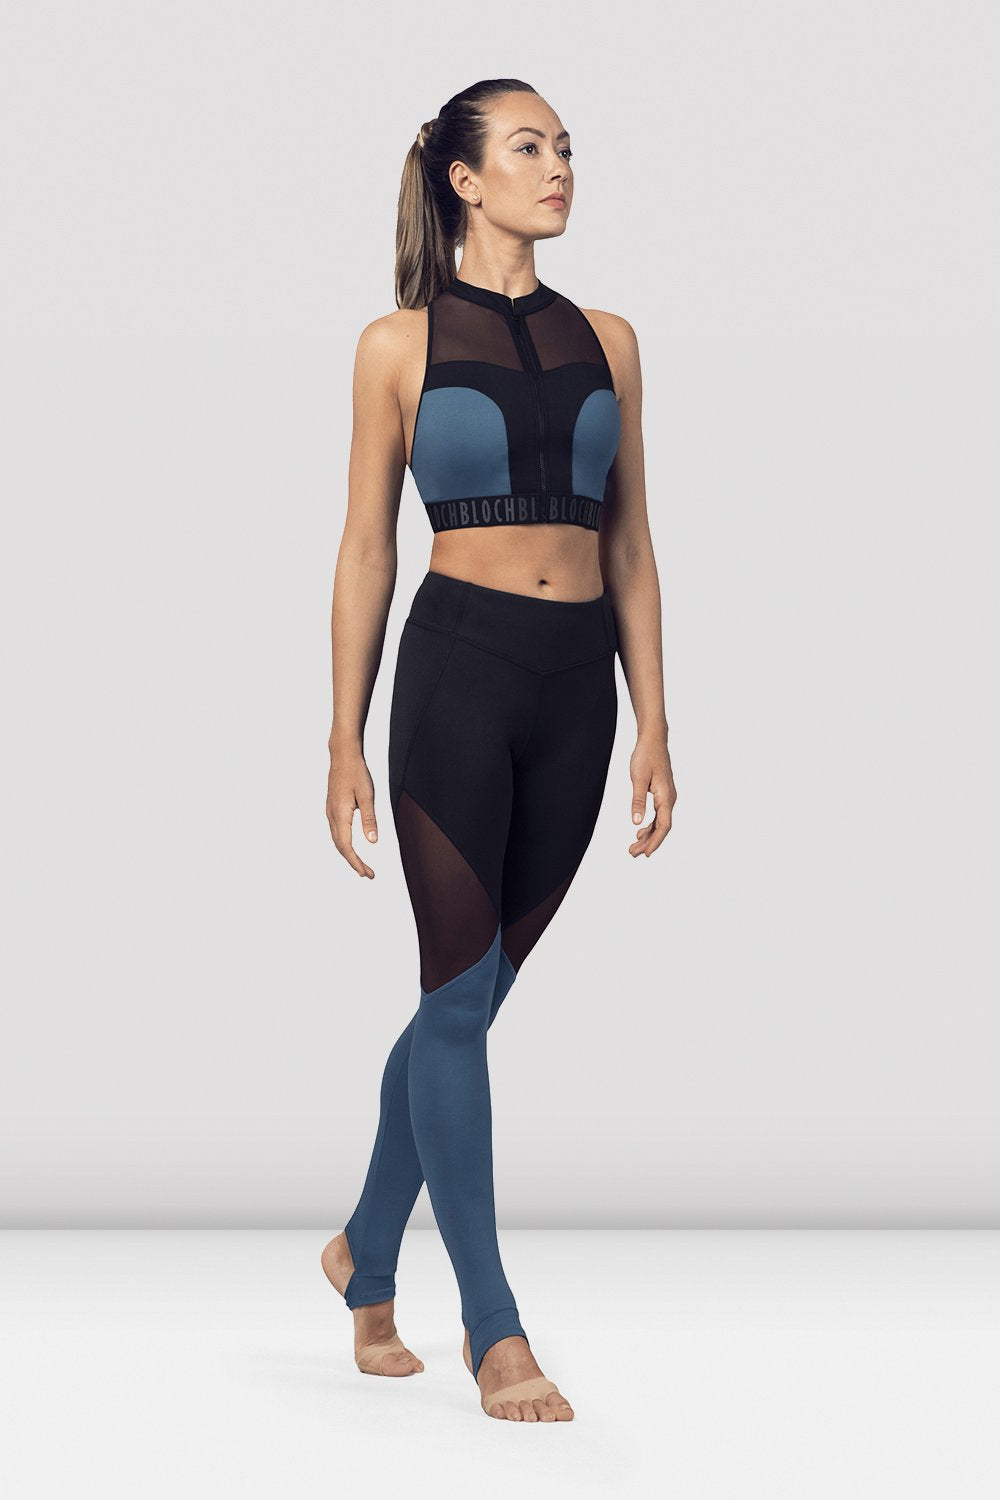 Seaport Bloch Ladies Zip Front Mesh Back Crop Top on female model in parallel fourth position on releve facing corner